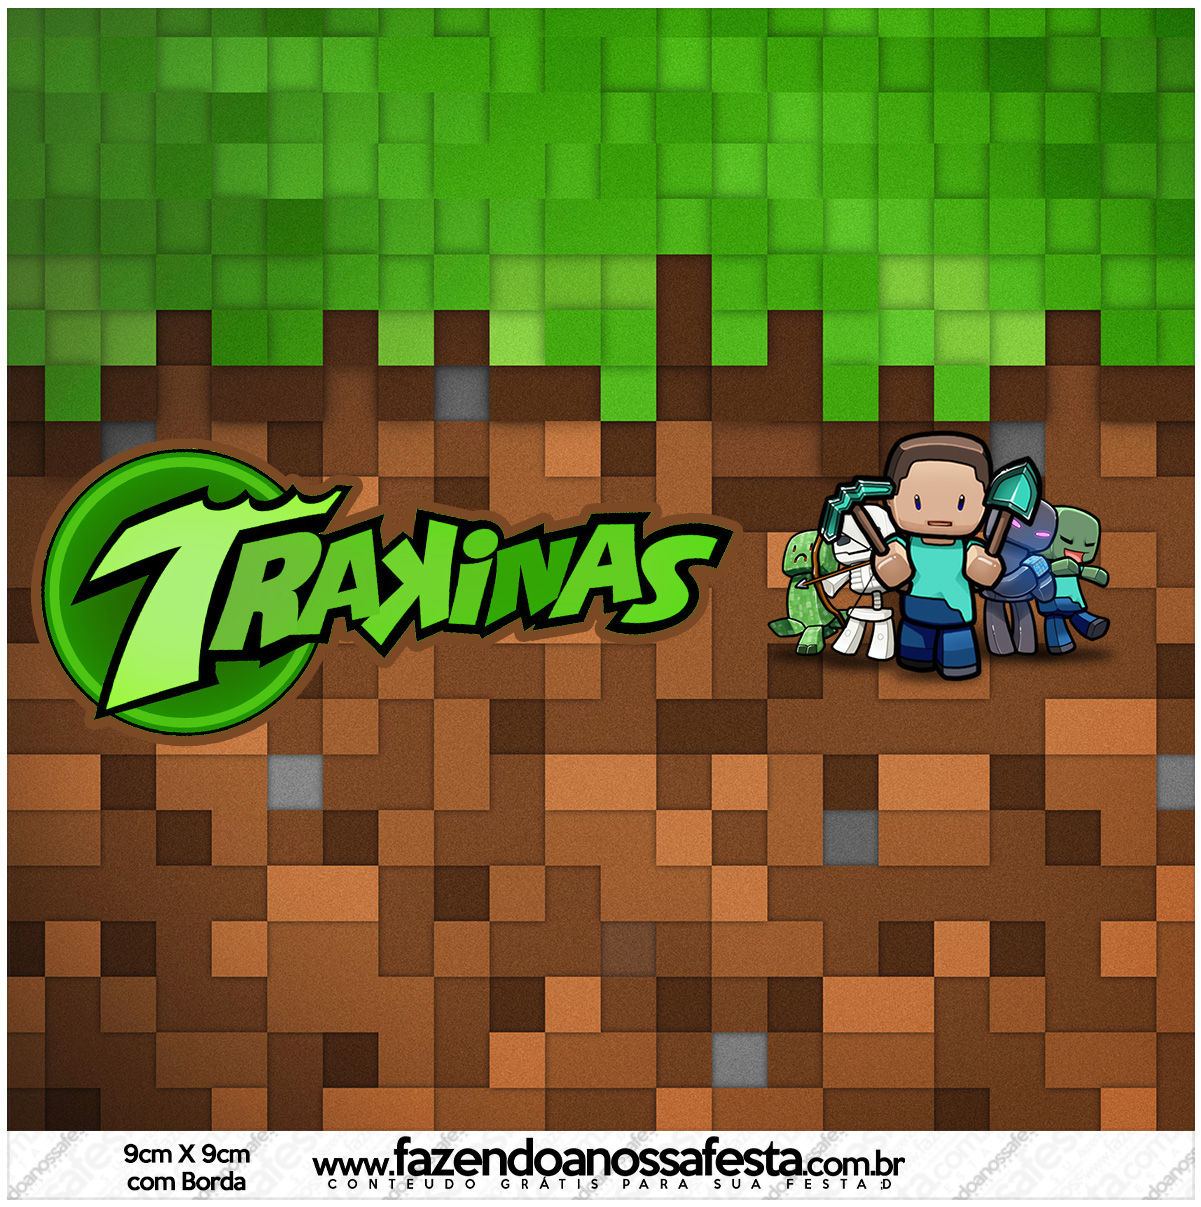 Rotulo Mini Trakinas Minecraft